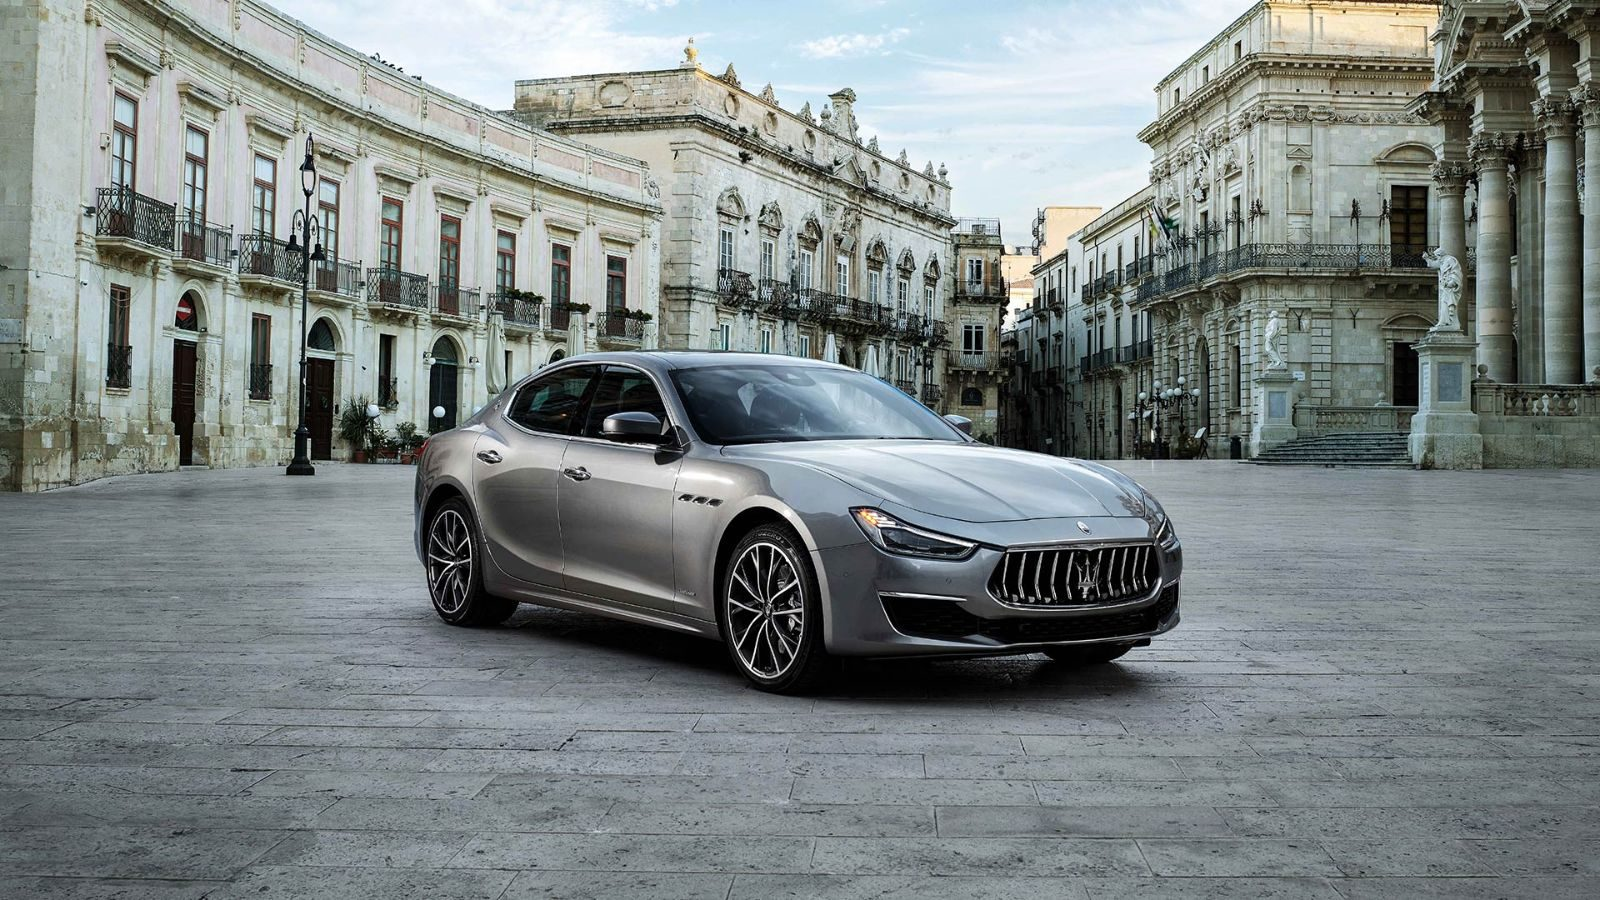 The future of Maserati is hybrid cars and battery electrification